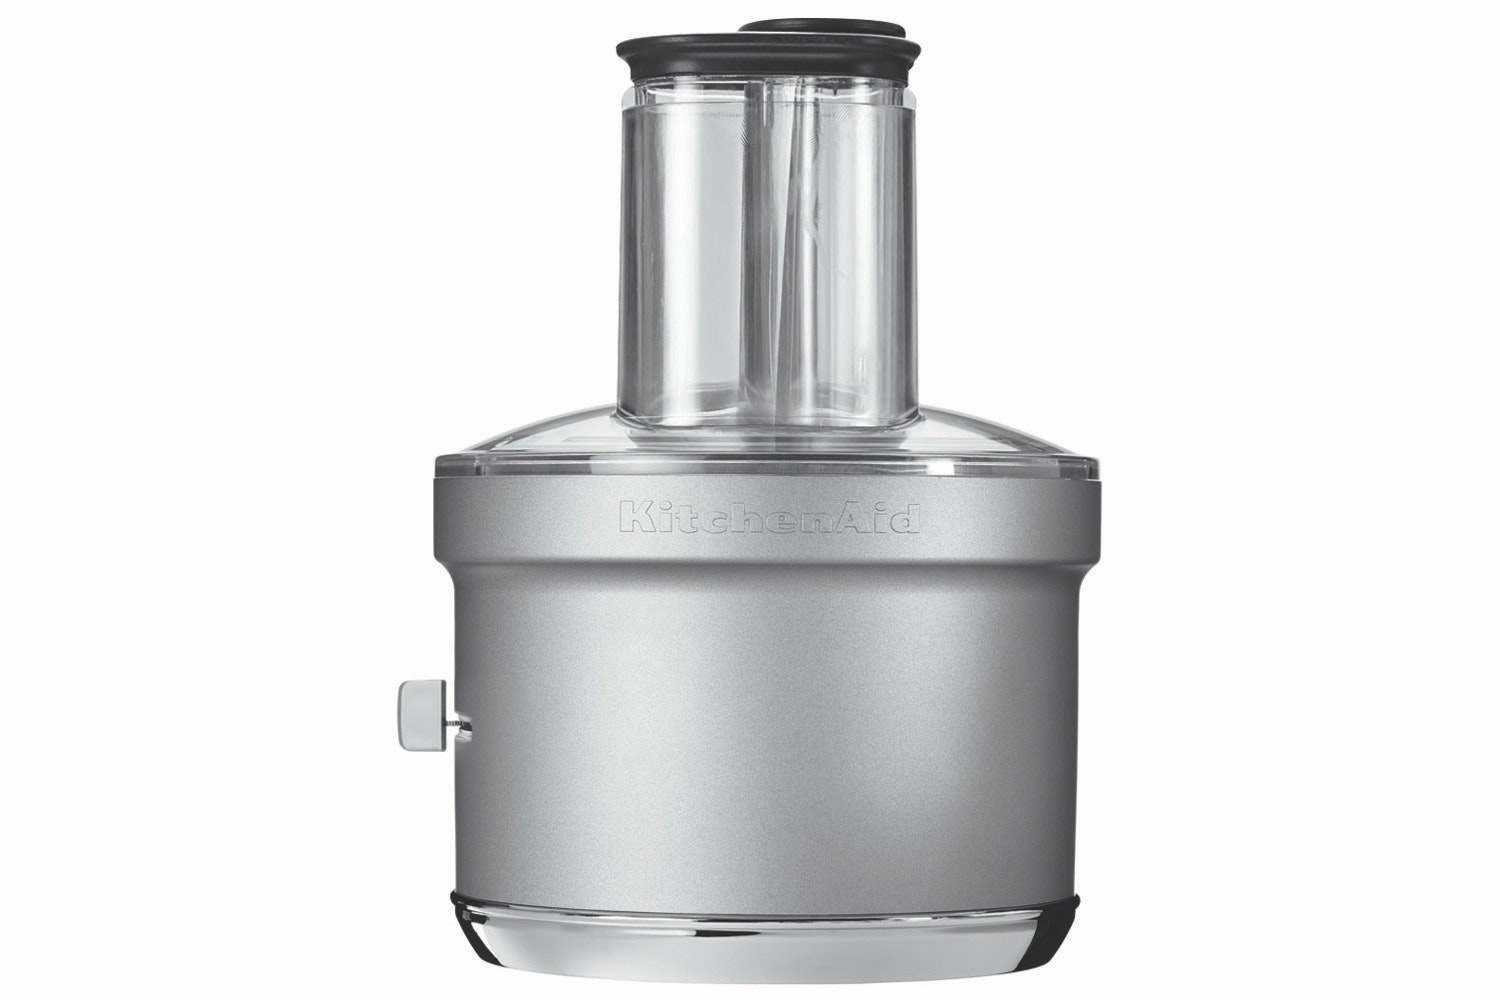 KitchenAid Food Processor Attachment for Stand Mixer  | Grey